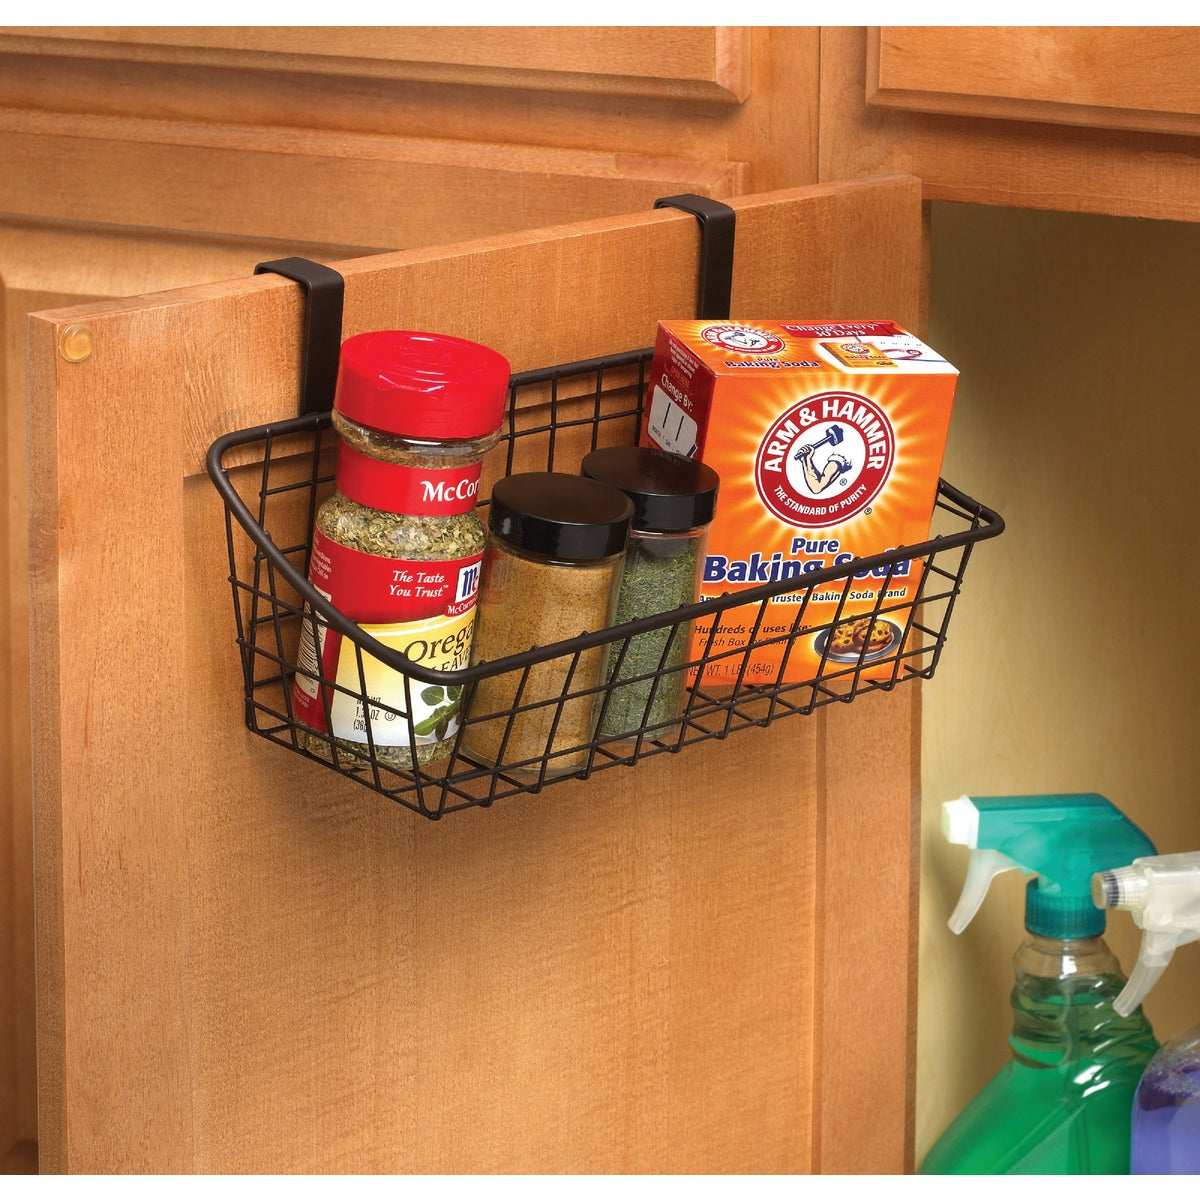 OTCD SMALL GRID BASKET - 56124 by Spectrum Diversified